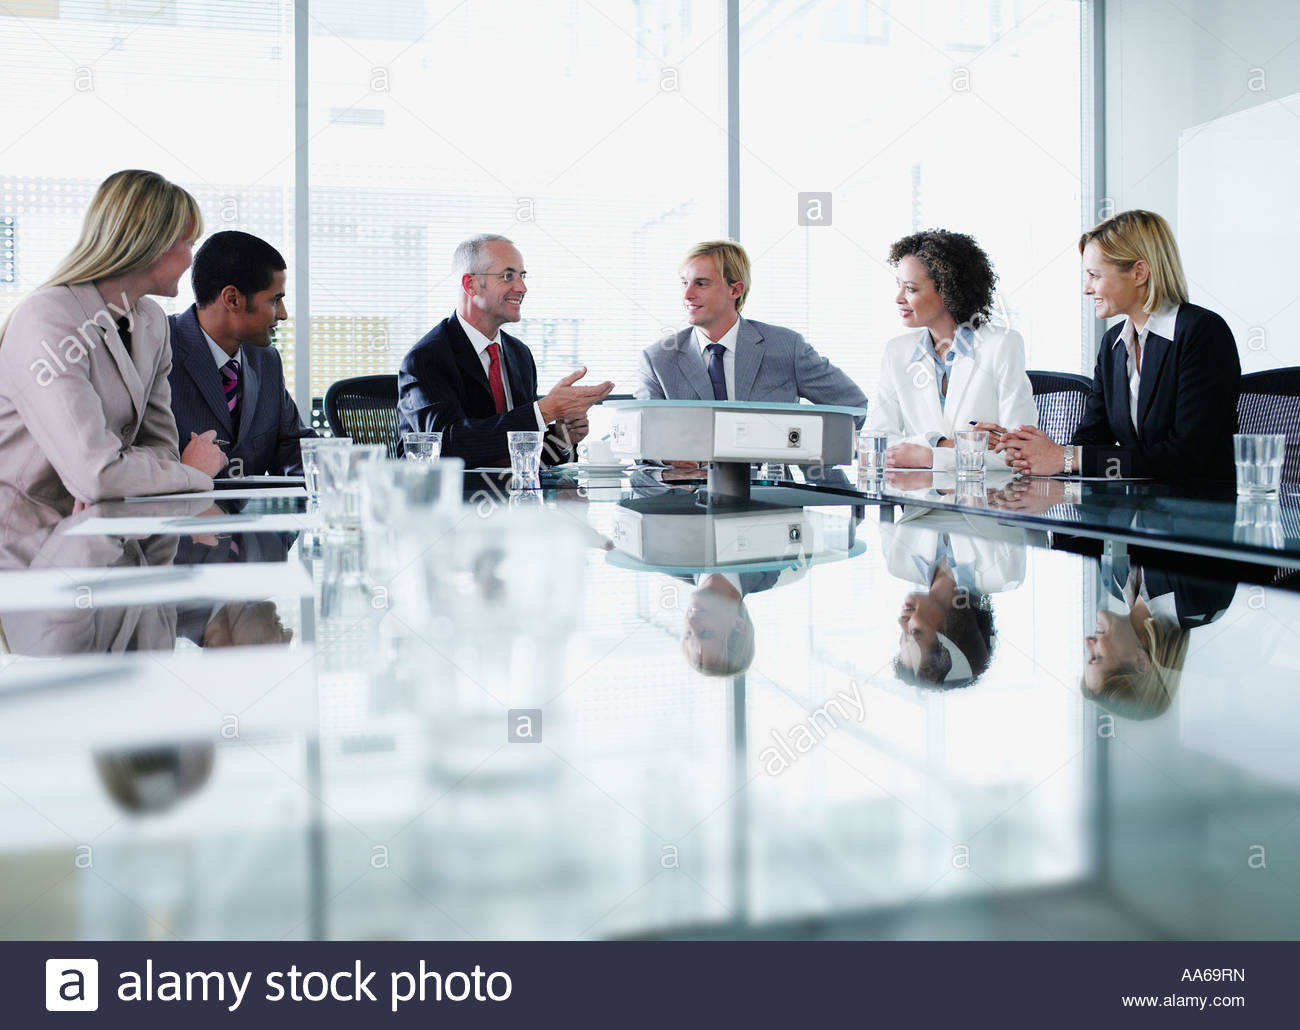 Group of office workers in a boardroom meeting - Stock Image